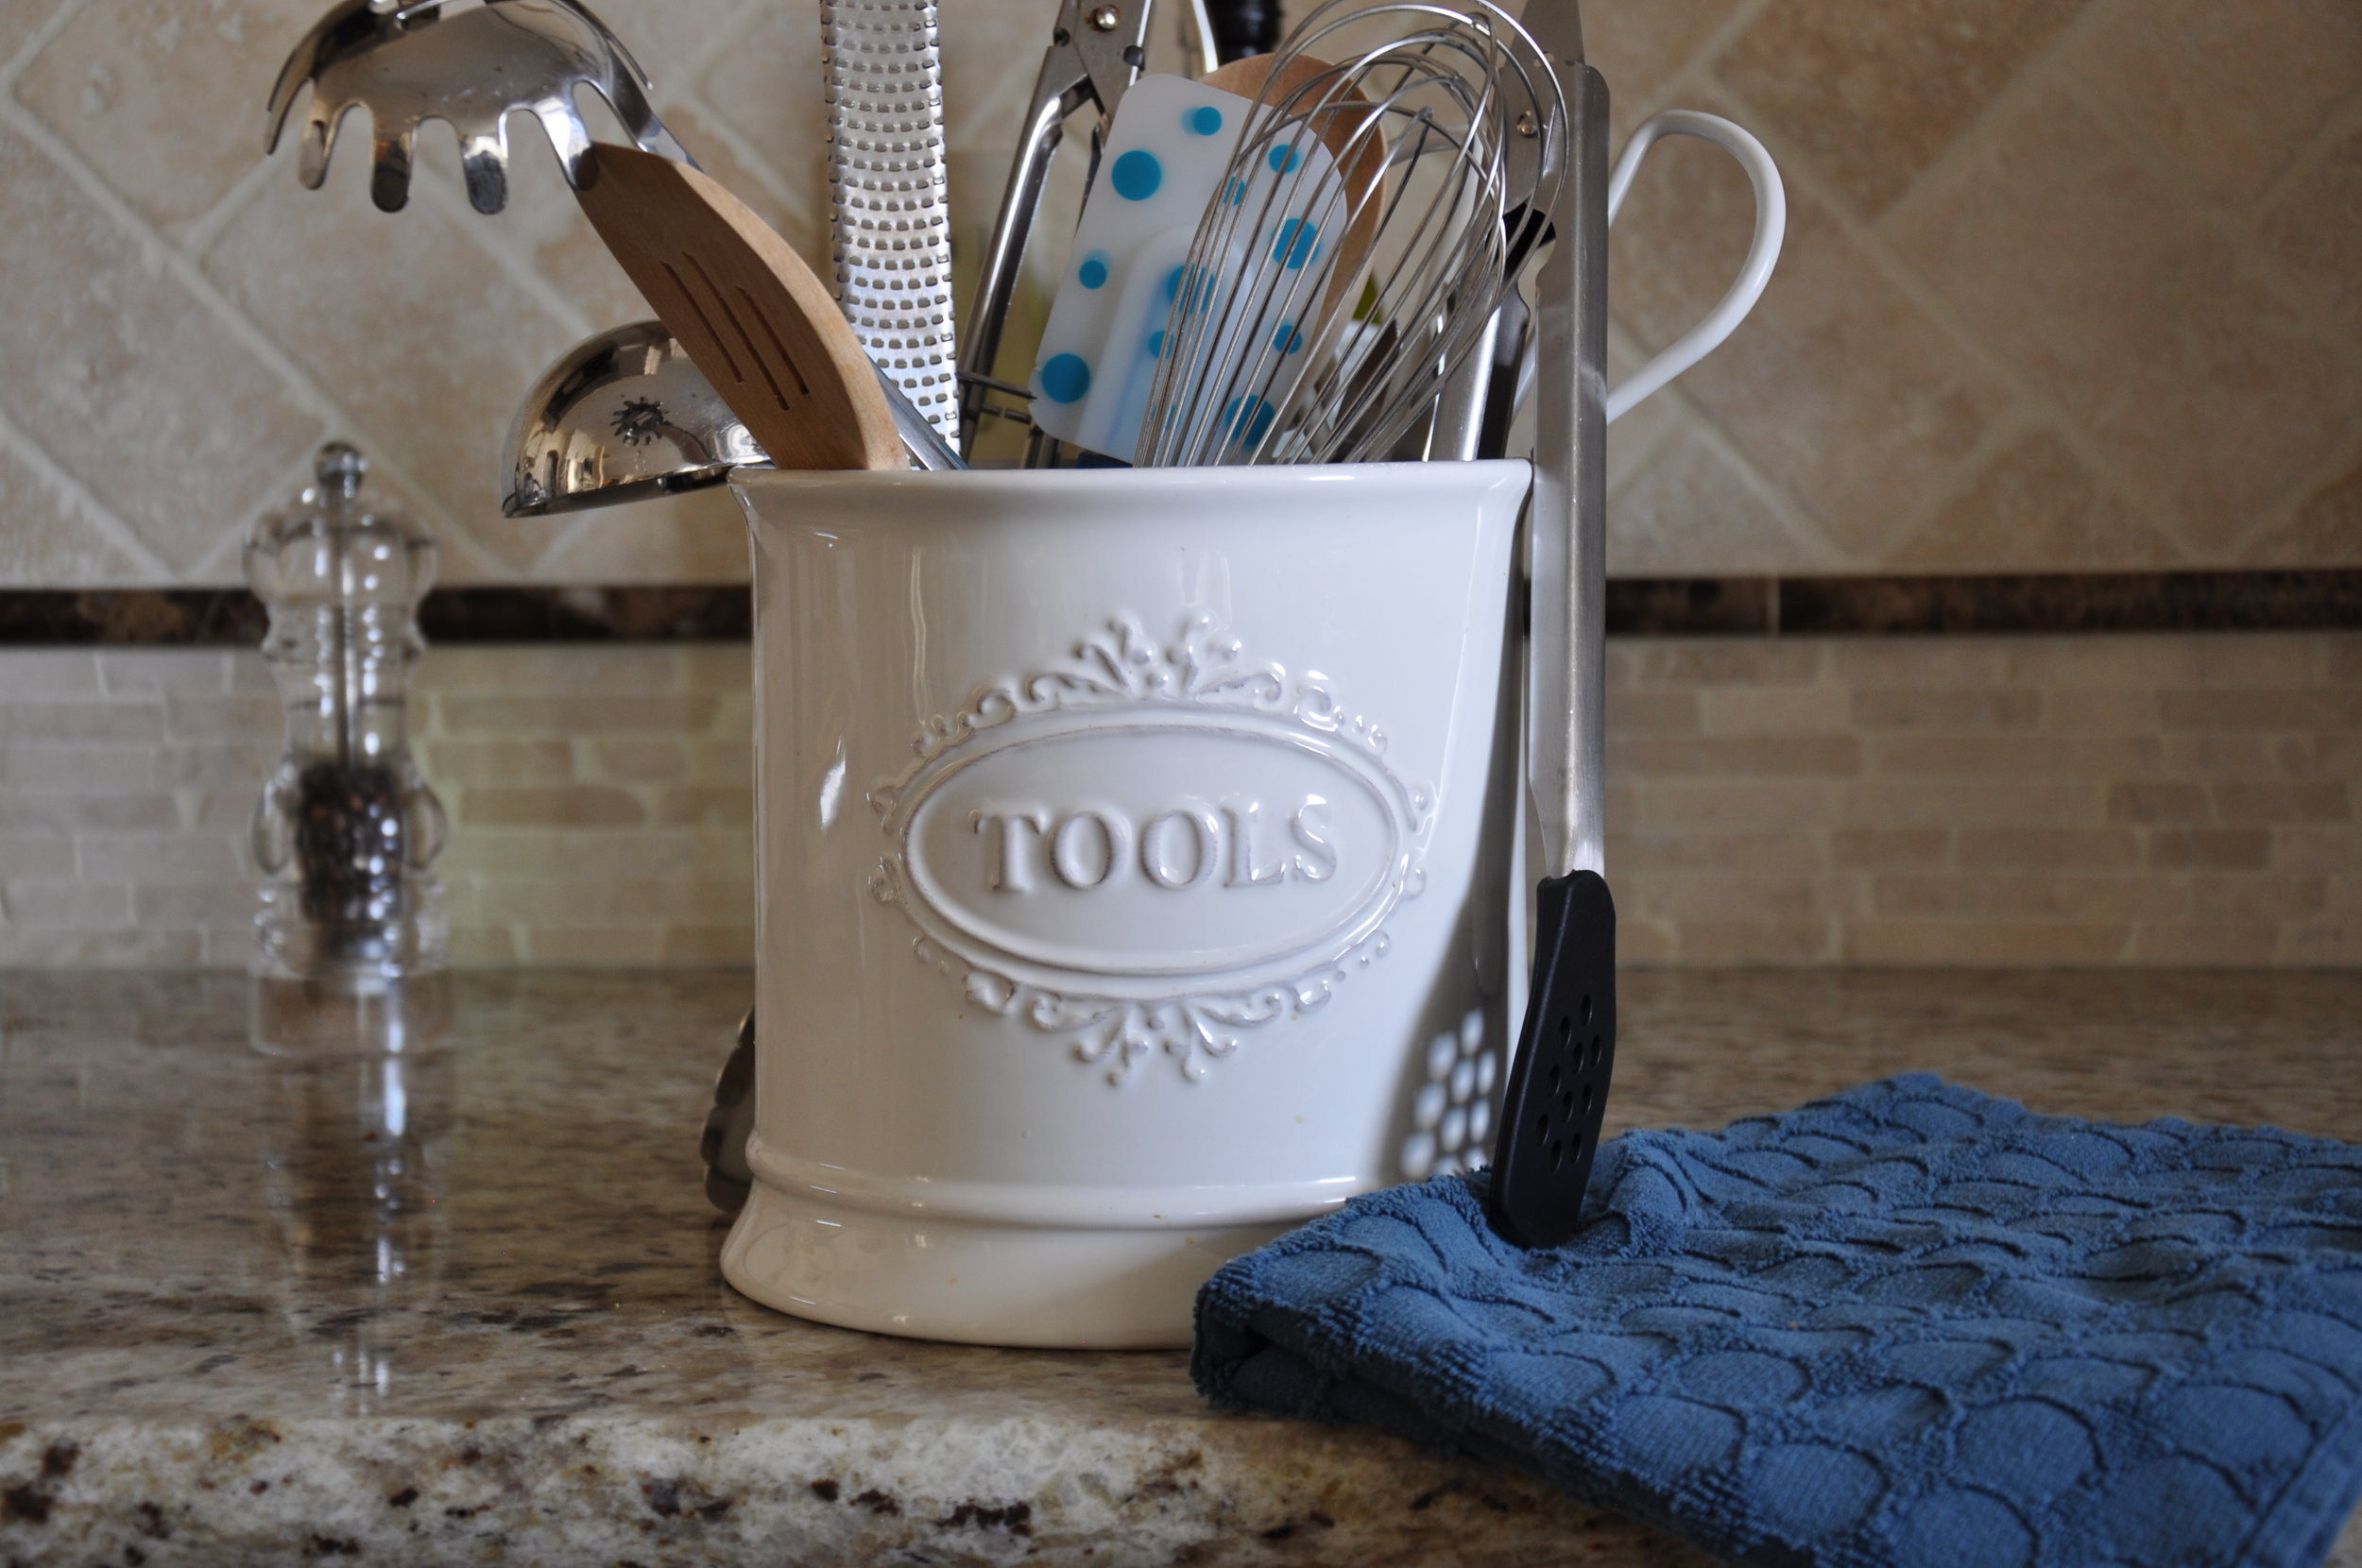 Food Allergy Cooking Tools